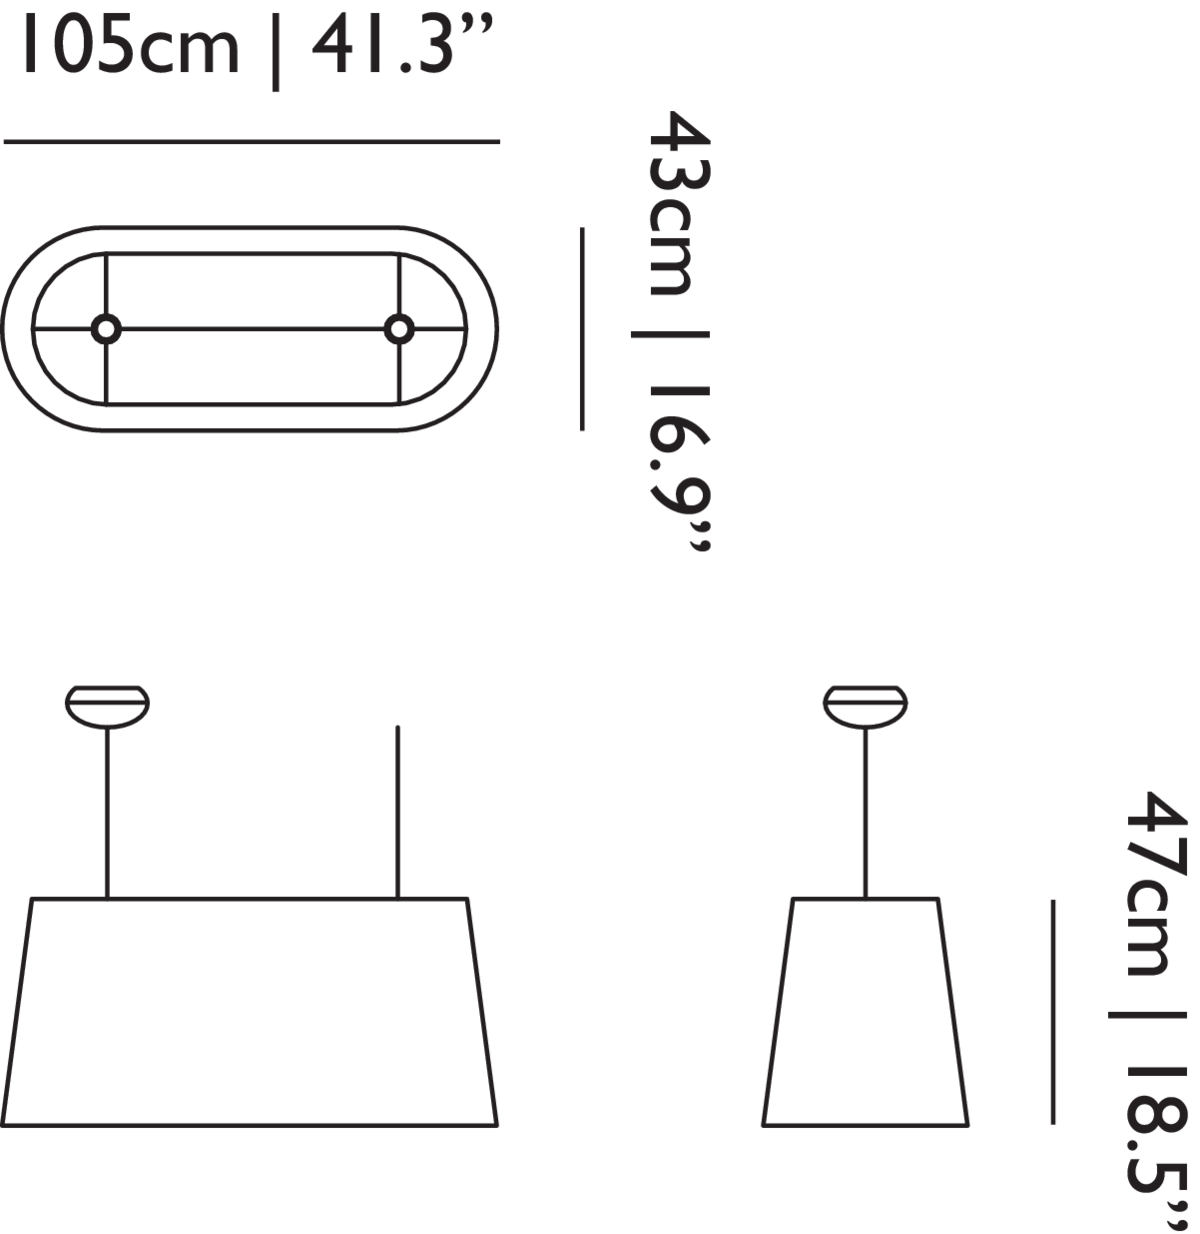 Oval Light suspension linedrawing with dimensions